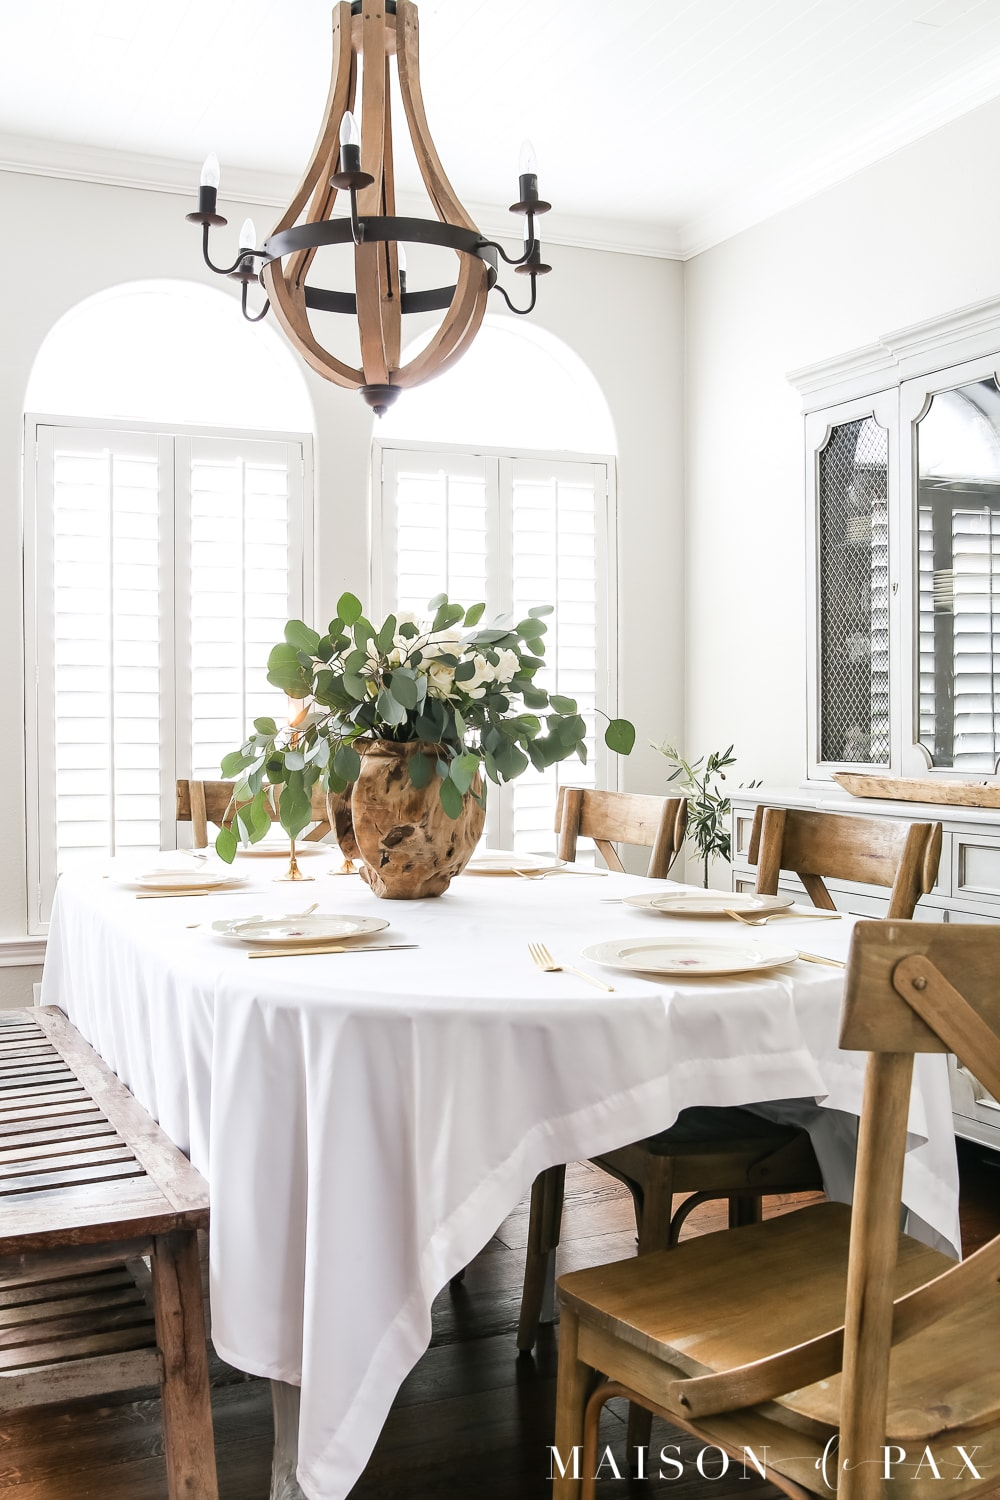 French Country Styled Dining room- Maison de Pax